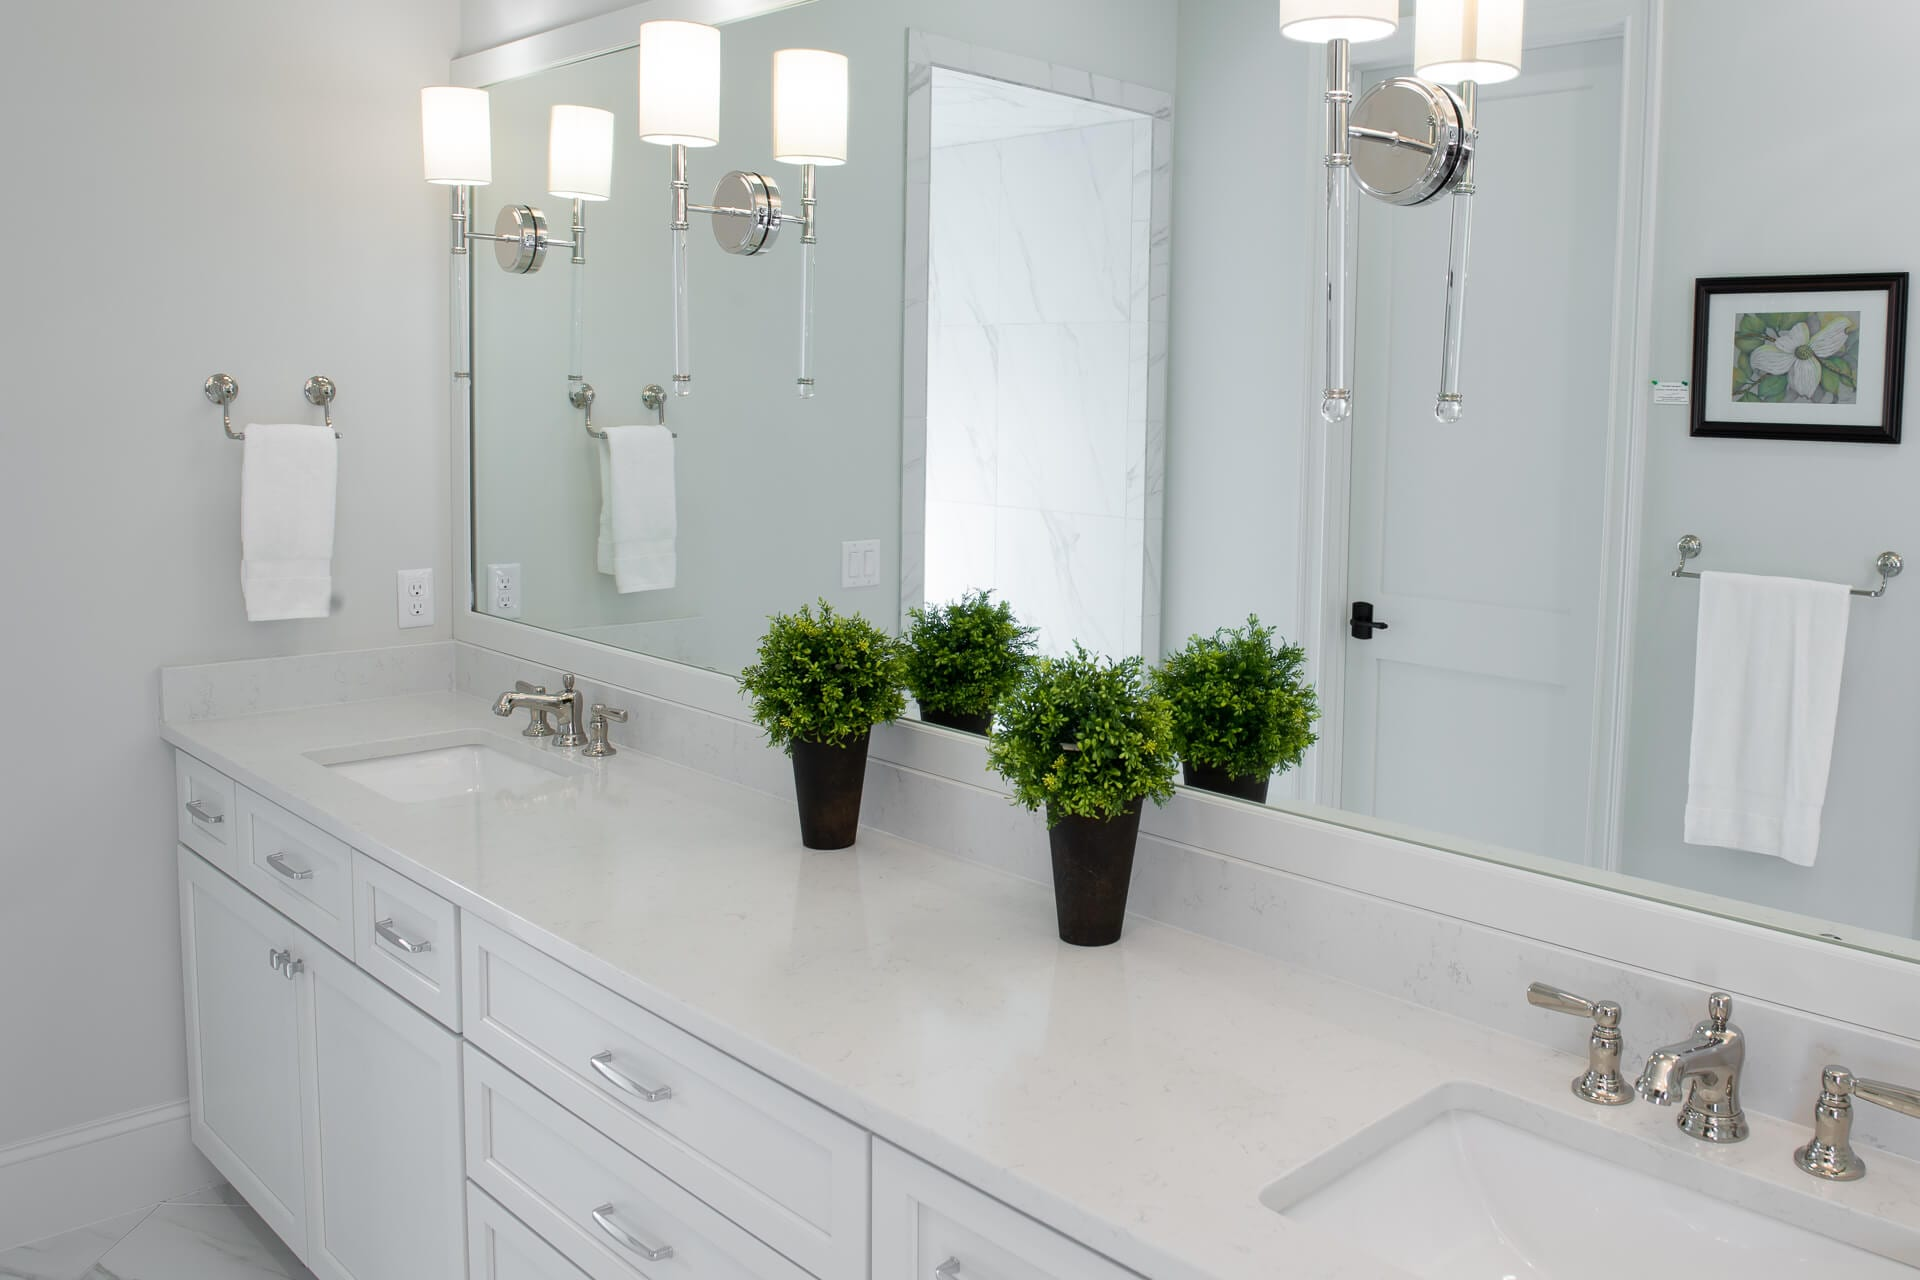 nd5 1115 Bathroom Vanities by Magnolia Countertops, Countertop Fabrication, Countertop Replacement and Repair in Cookeville and Crossville TN.